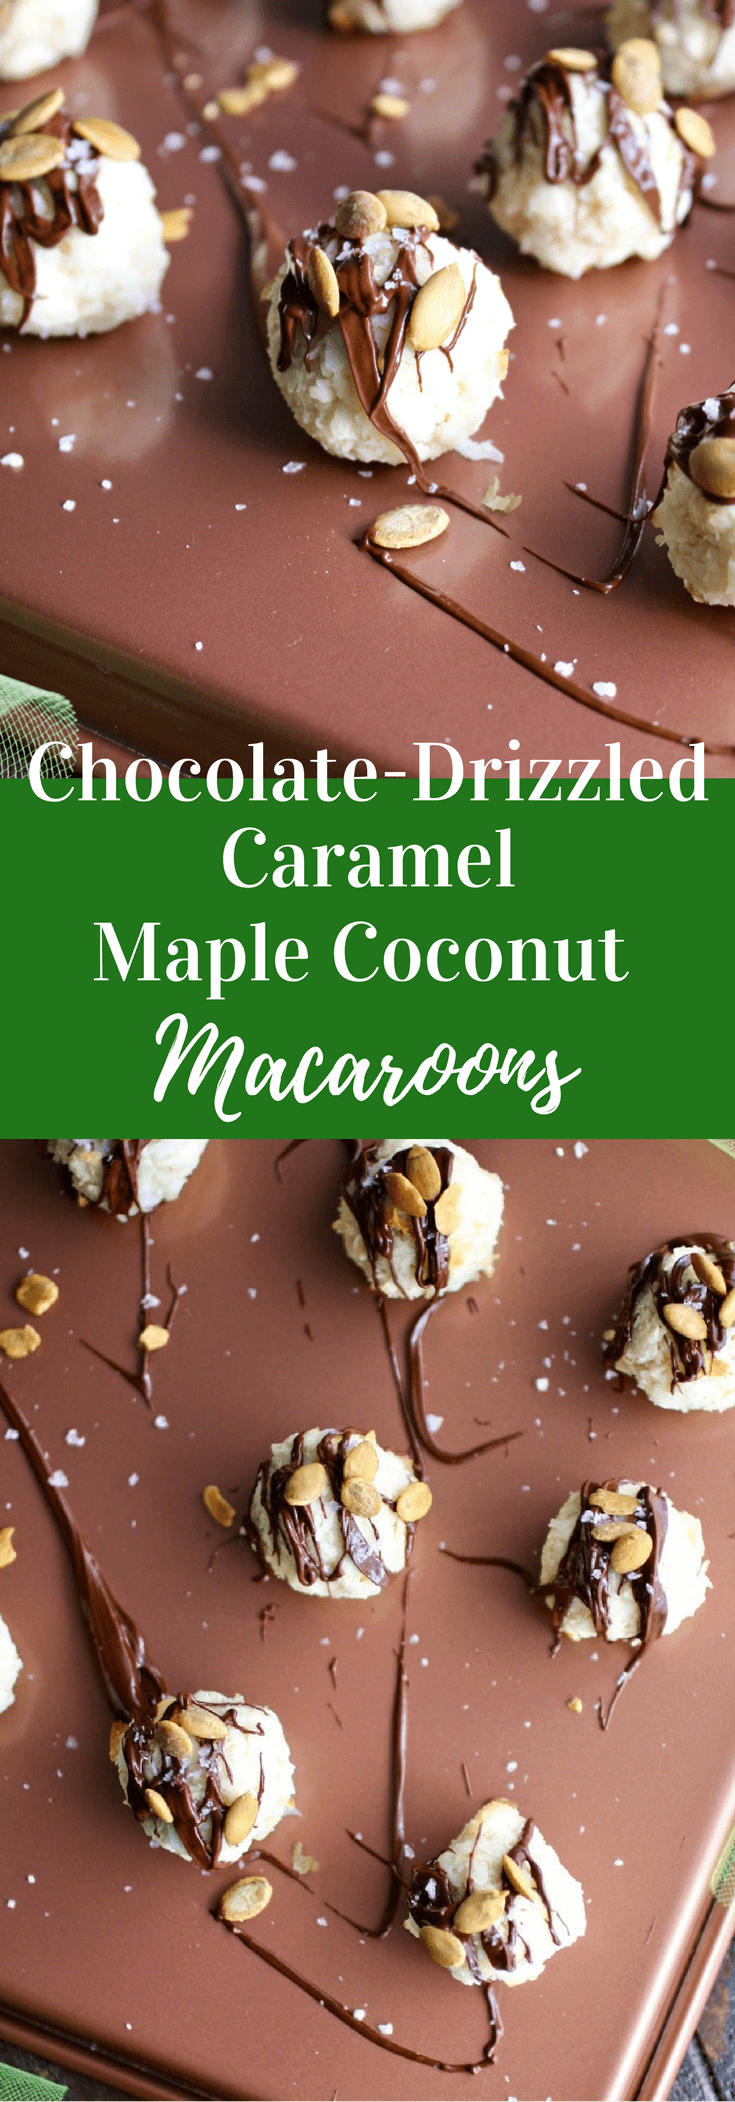 Perfect for the cookie platter: Chocolate-Drizzled Caramel Maple Coconut Macaroons!